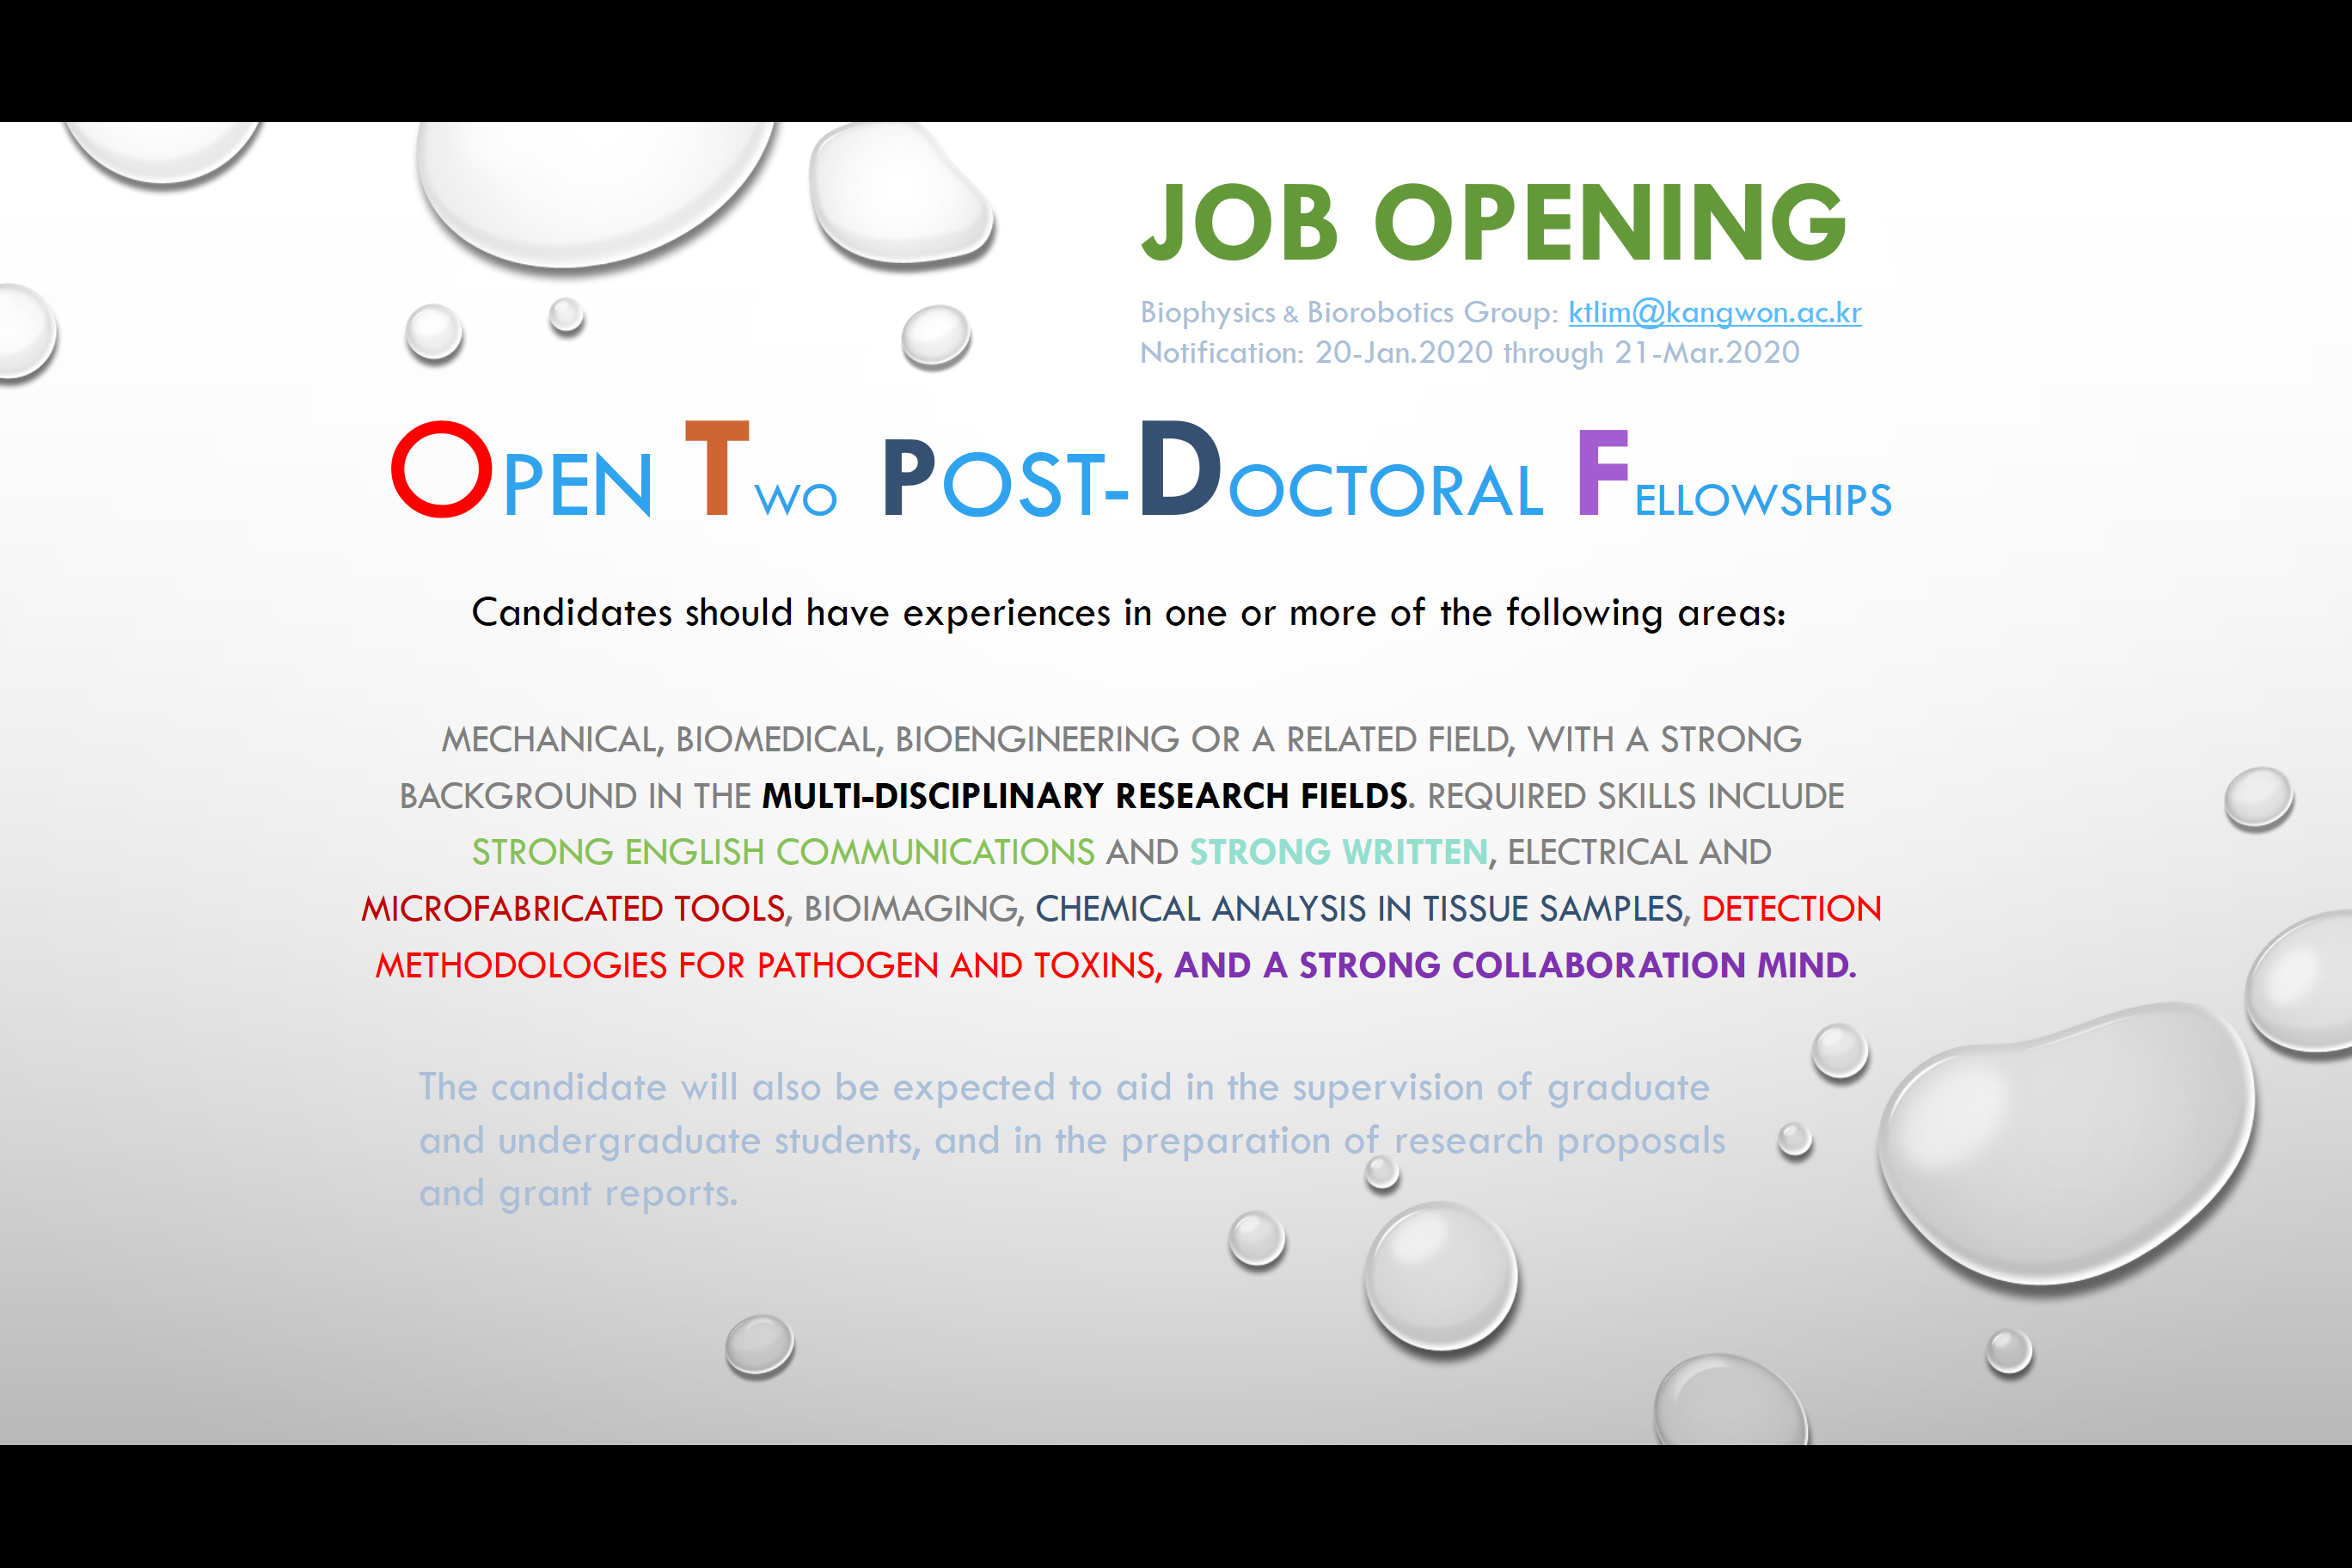 New post-doctoral fellow